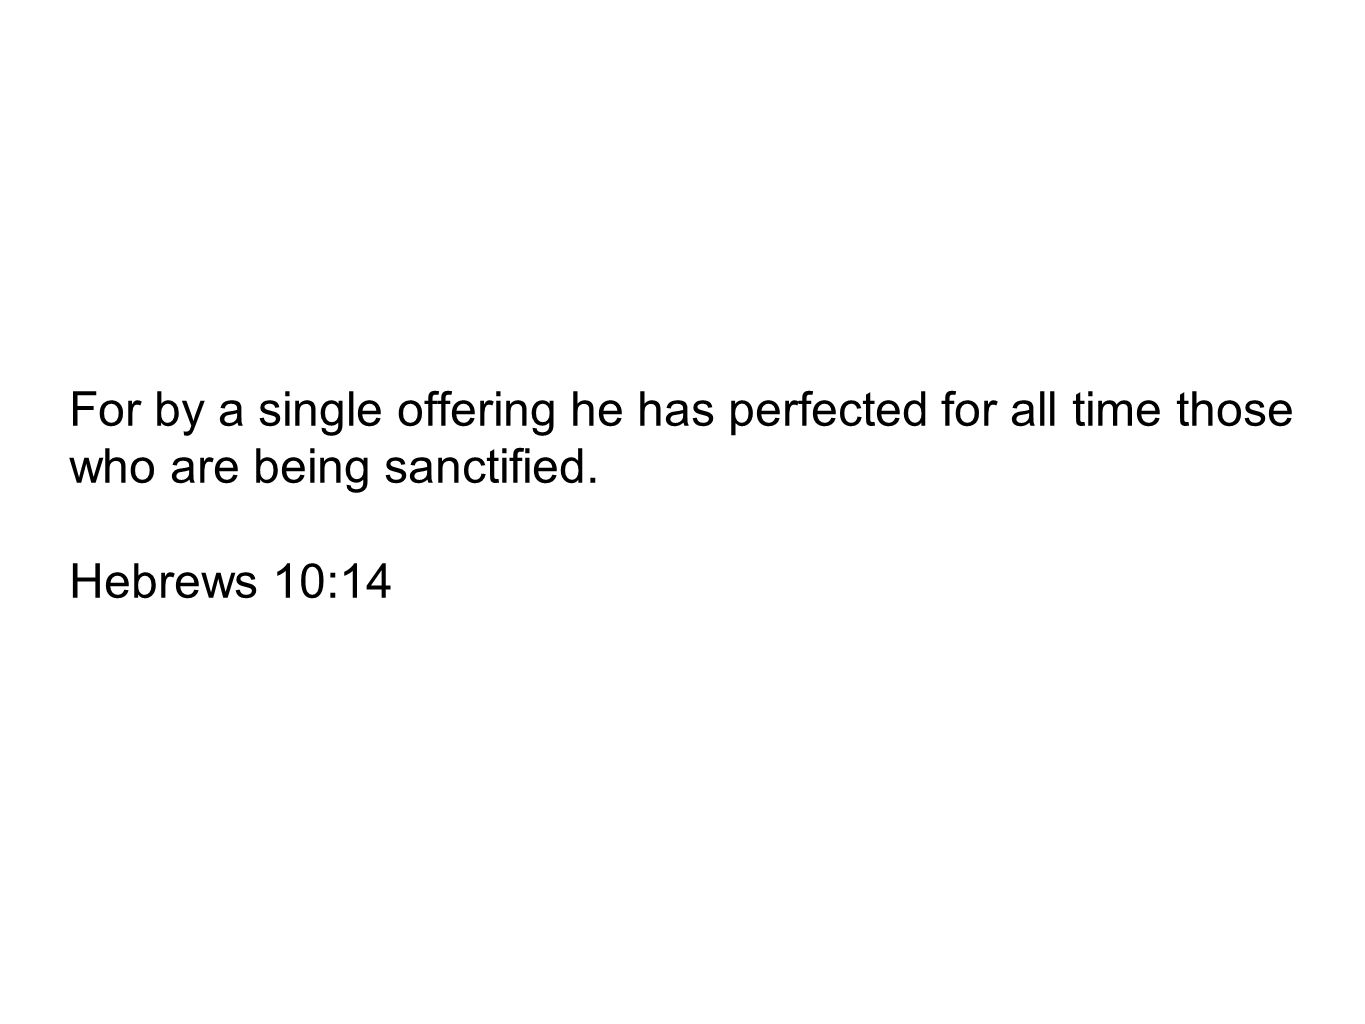 For by a single offering he has perfected for all time those who are being sanctified.